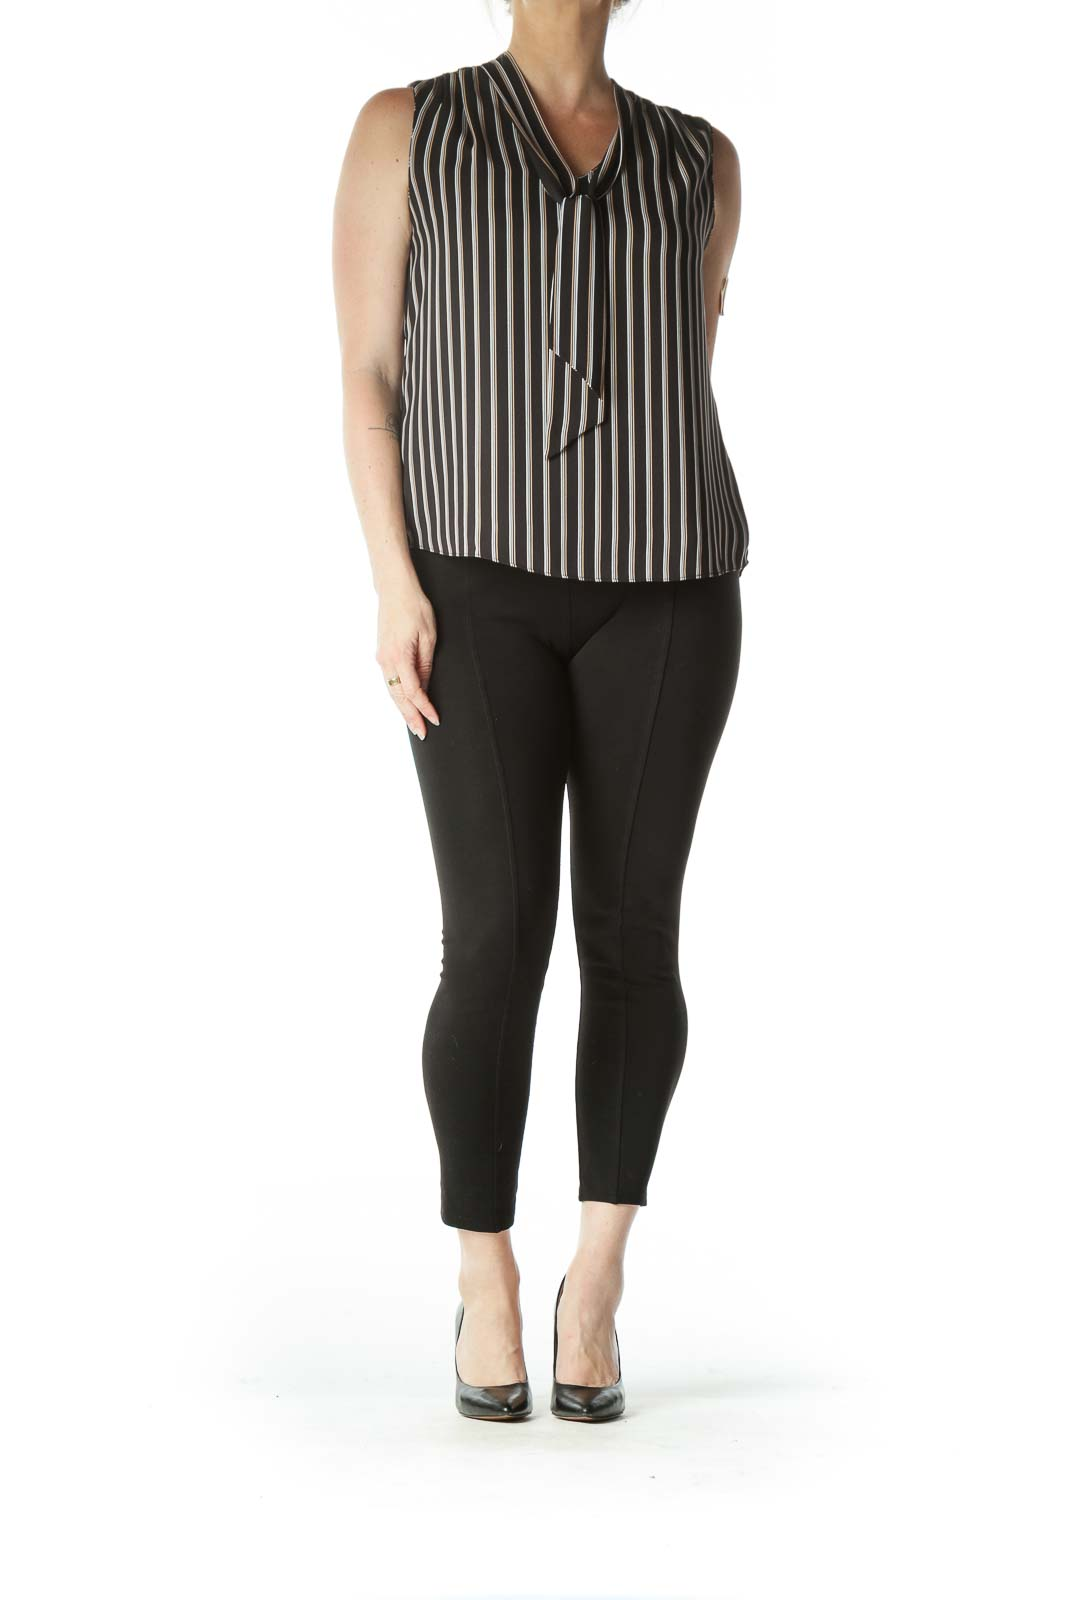 Black and White Striped Neck-Tie Sleeveless Blouse